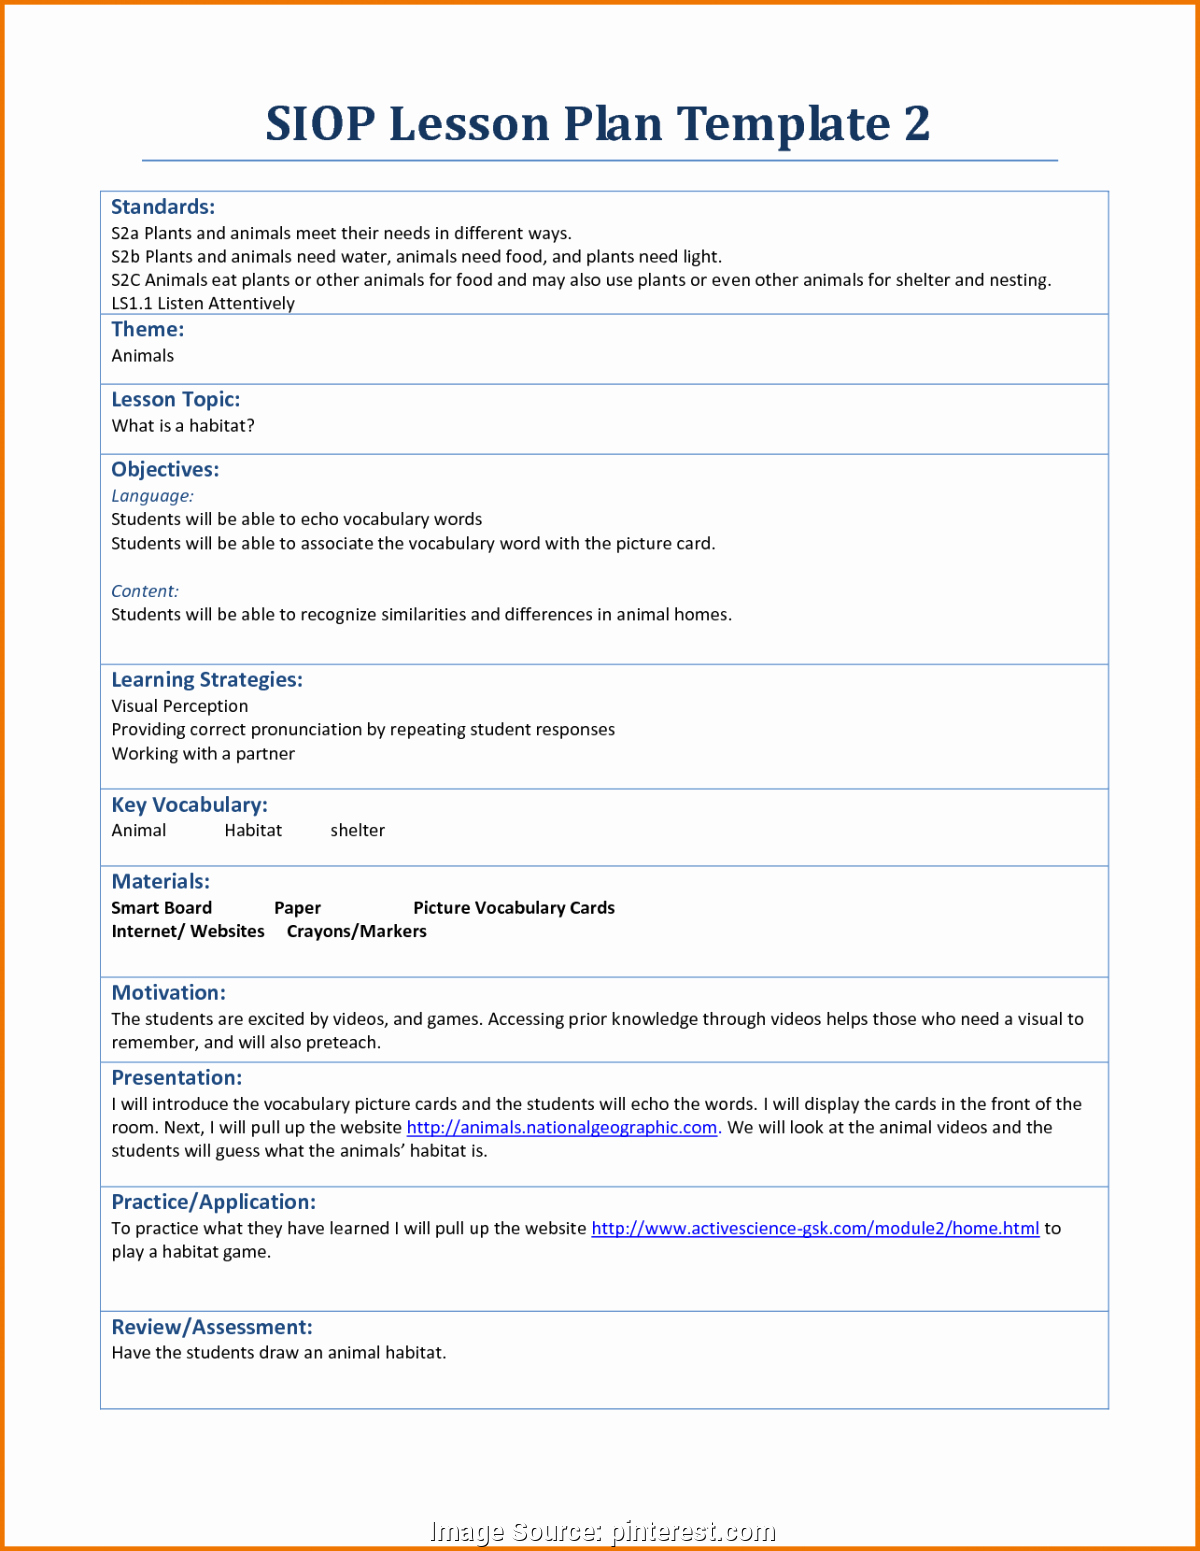 Lesson Plan Template Doc Awesome Interesting Lessons Learned Template 6 Project Management Lessons Learnt Template